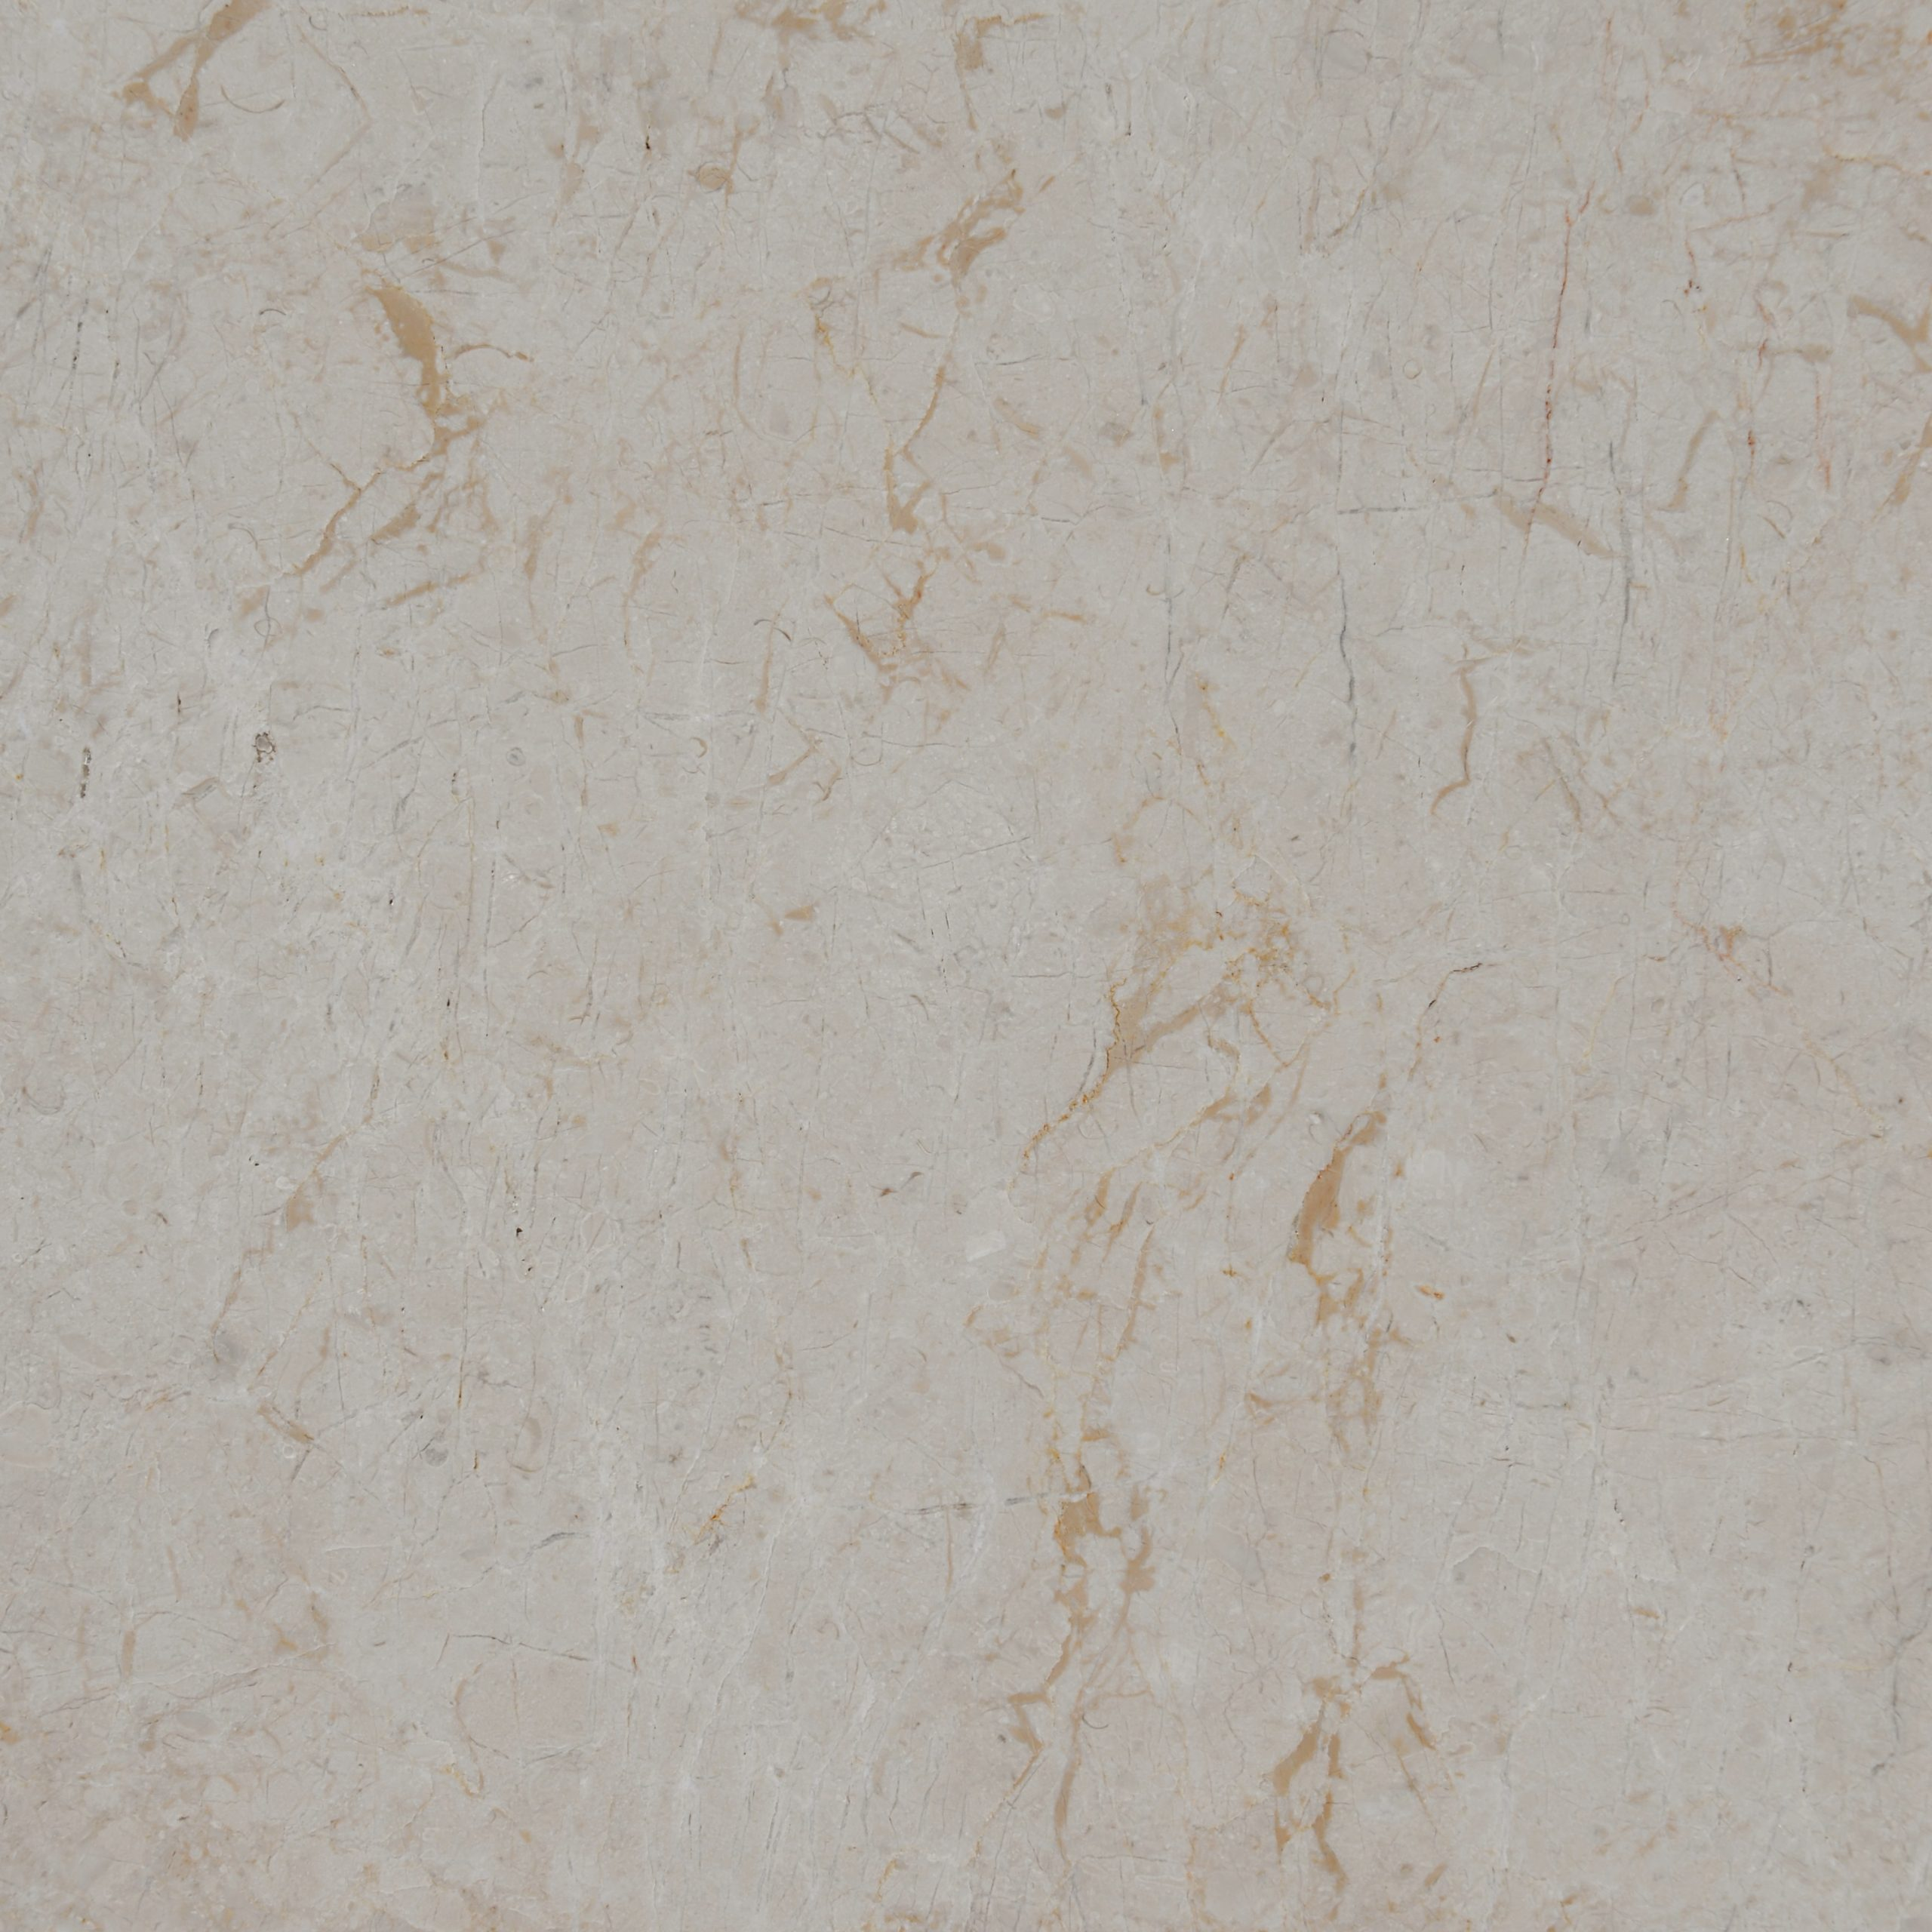 Crema Rocca Marble Tiles